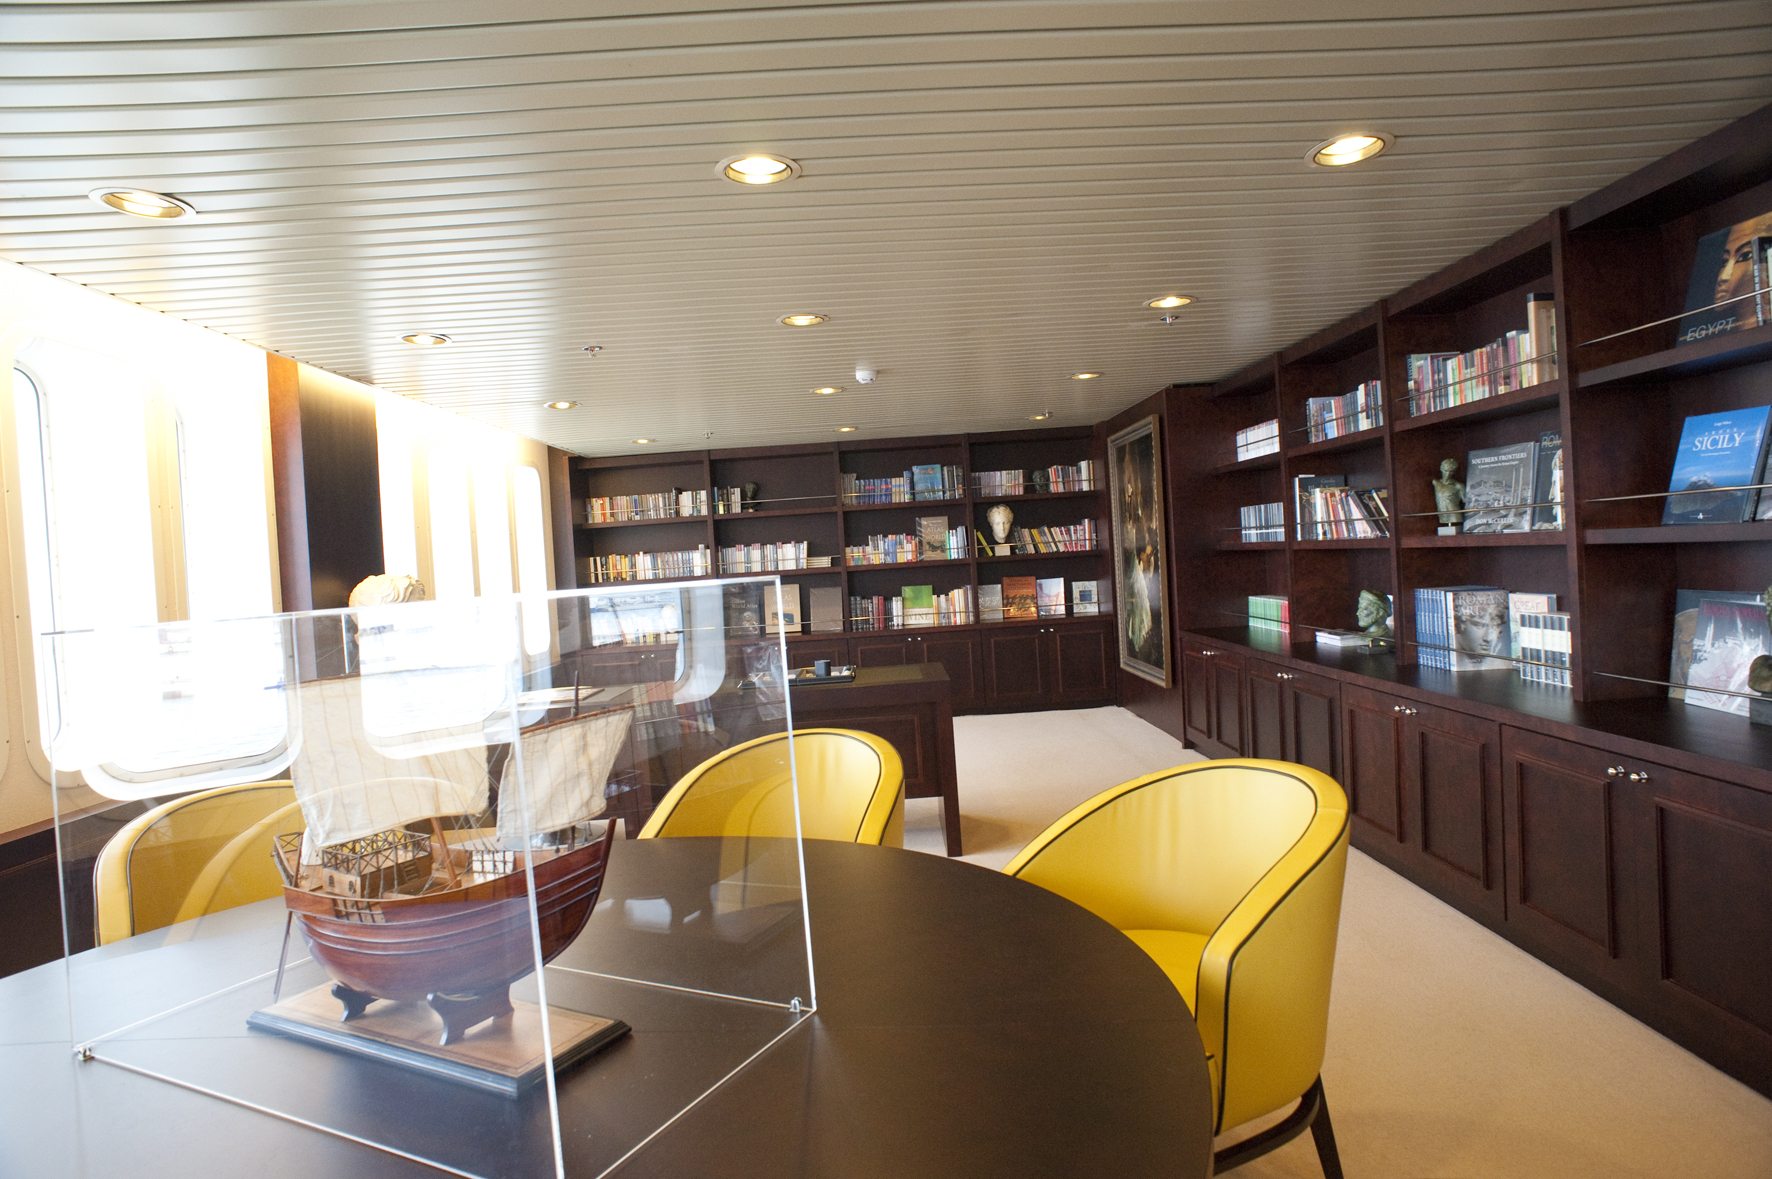 voyages to antiquity aegean odyssey library 2014.jpg